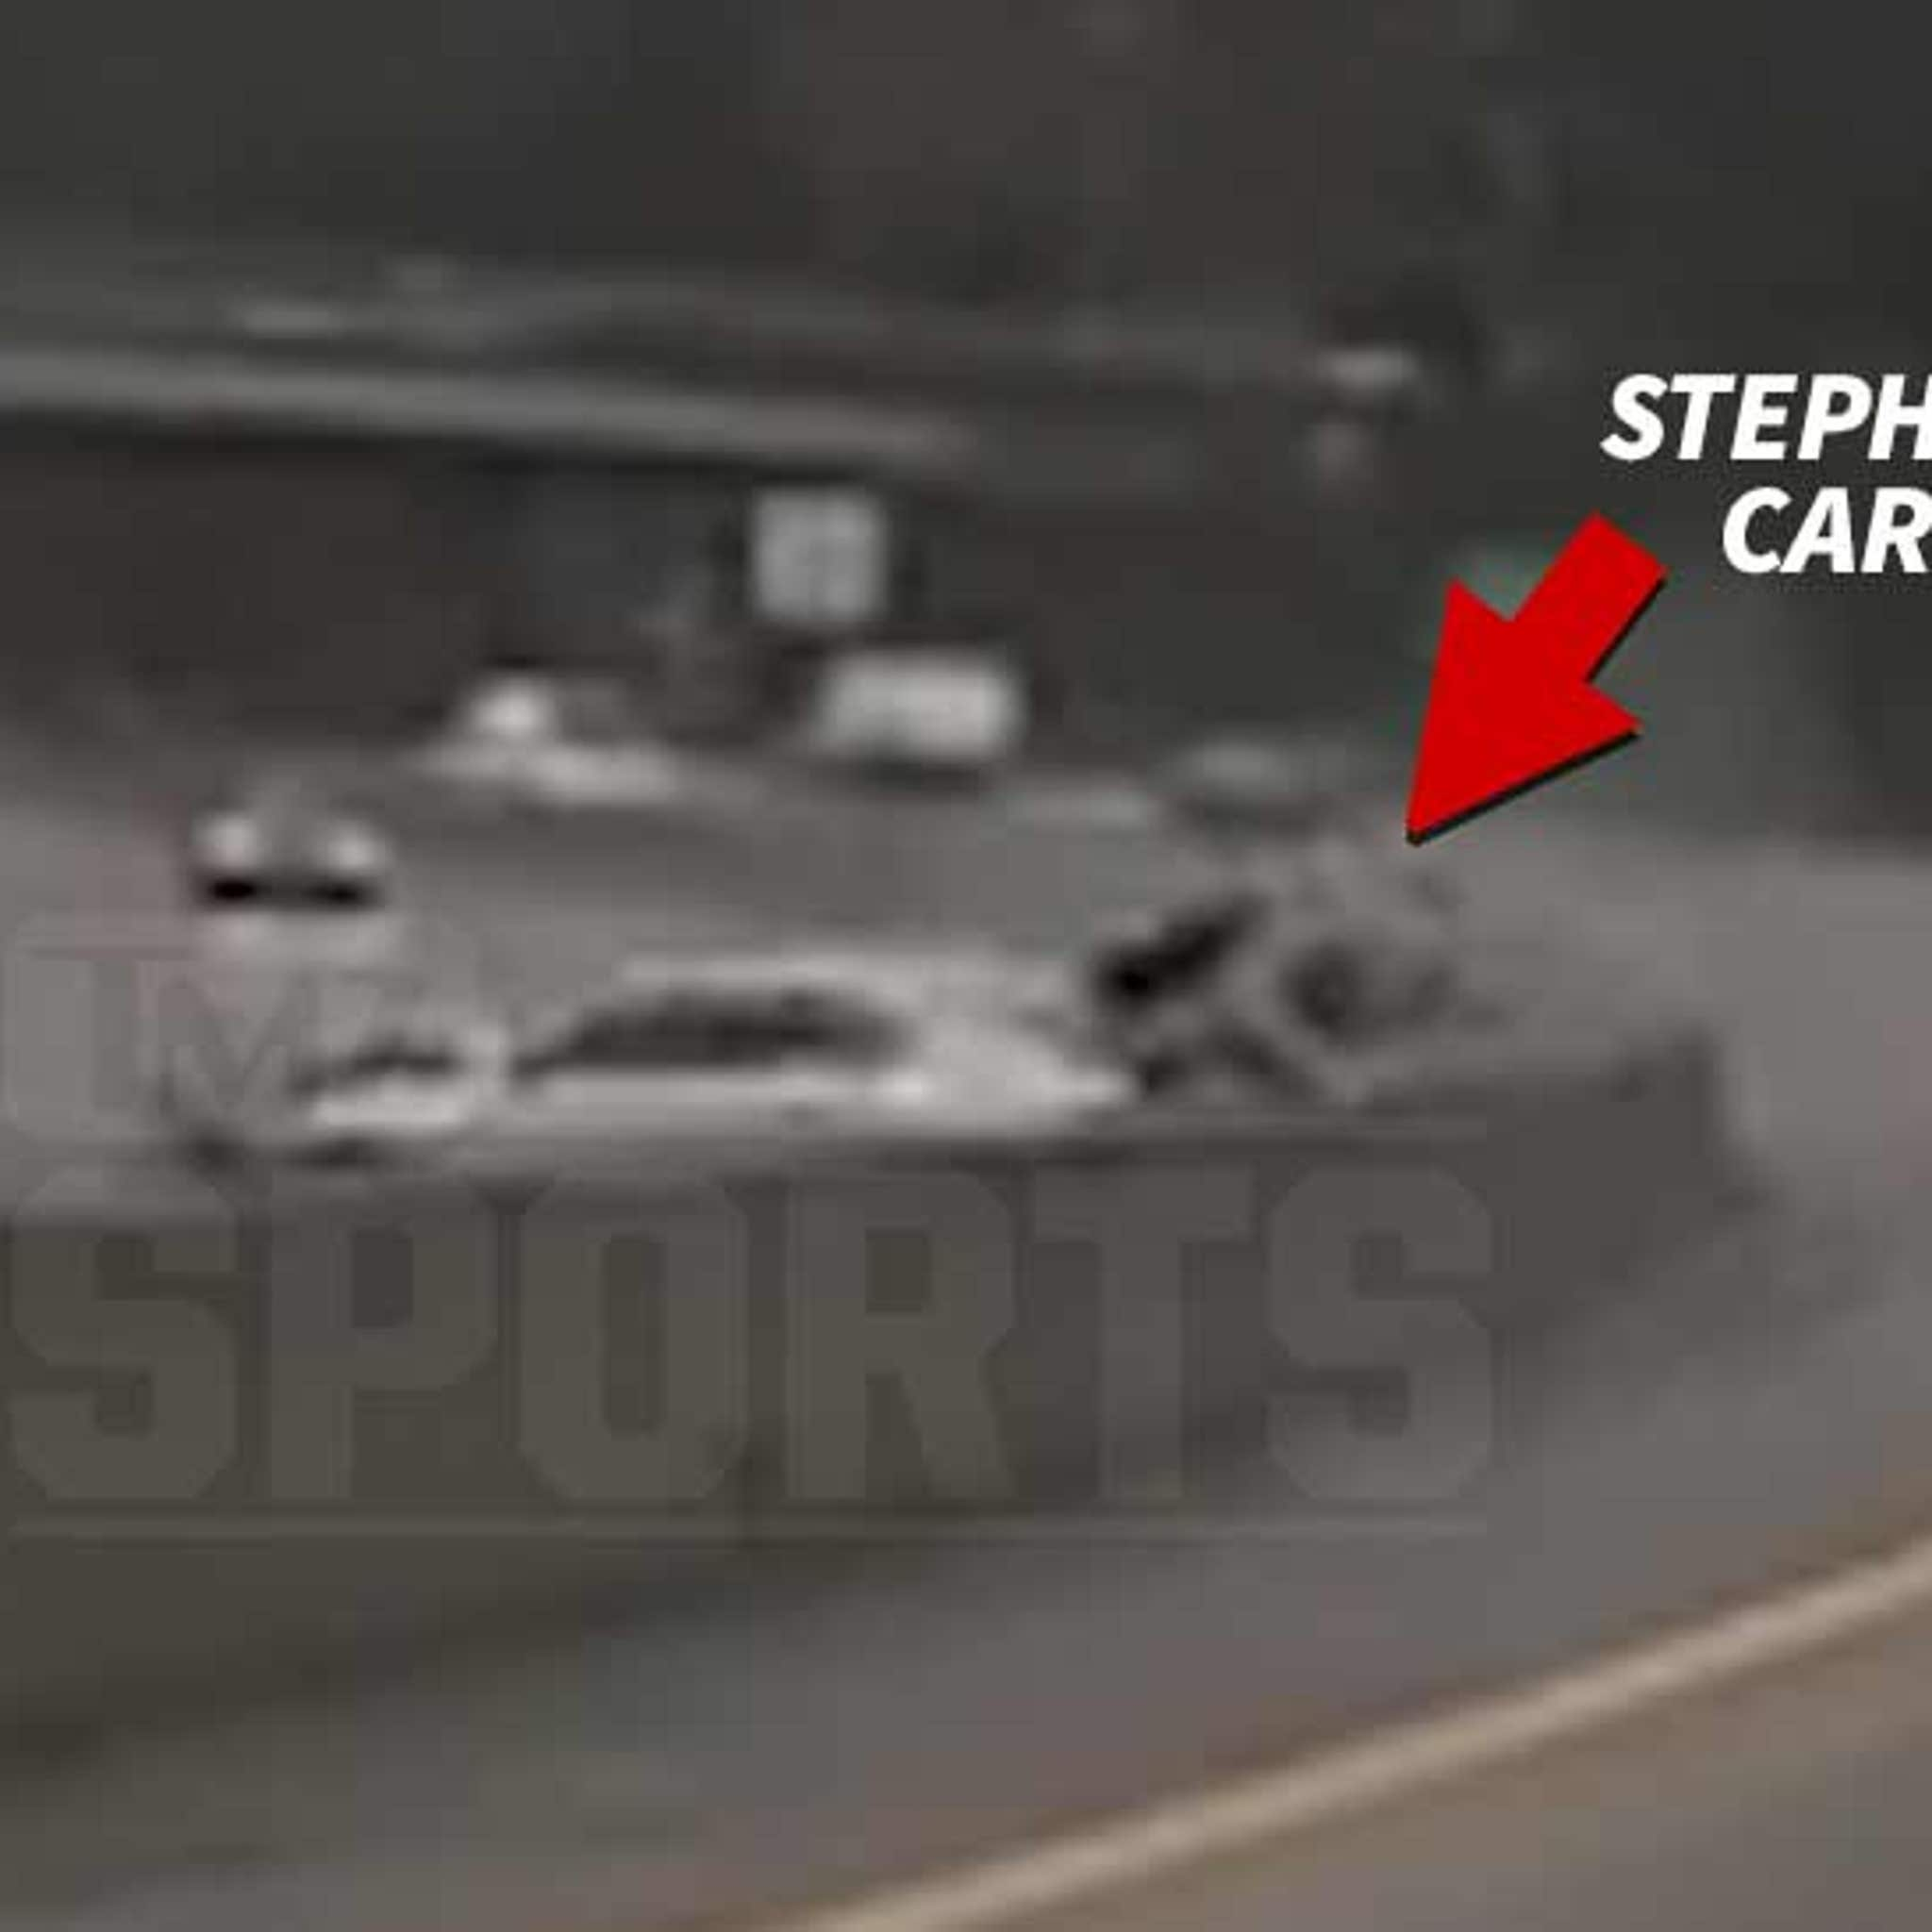 Steph Curry Crash Video Shows Porsche Smashed By Out of